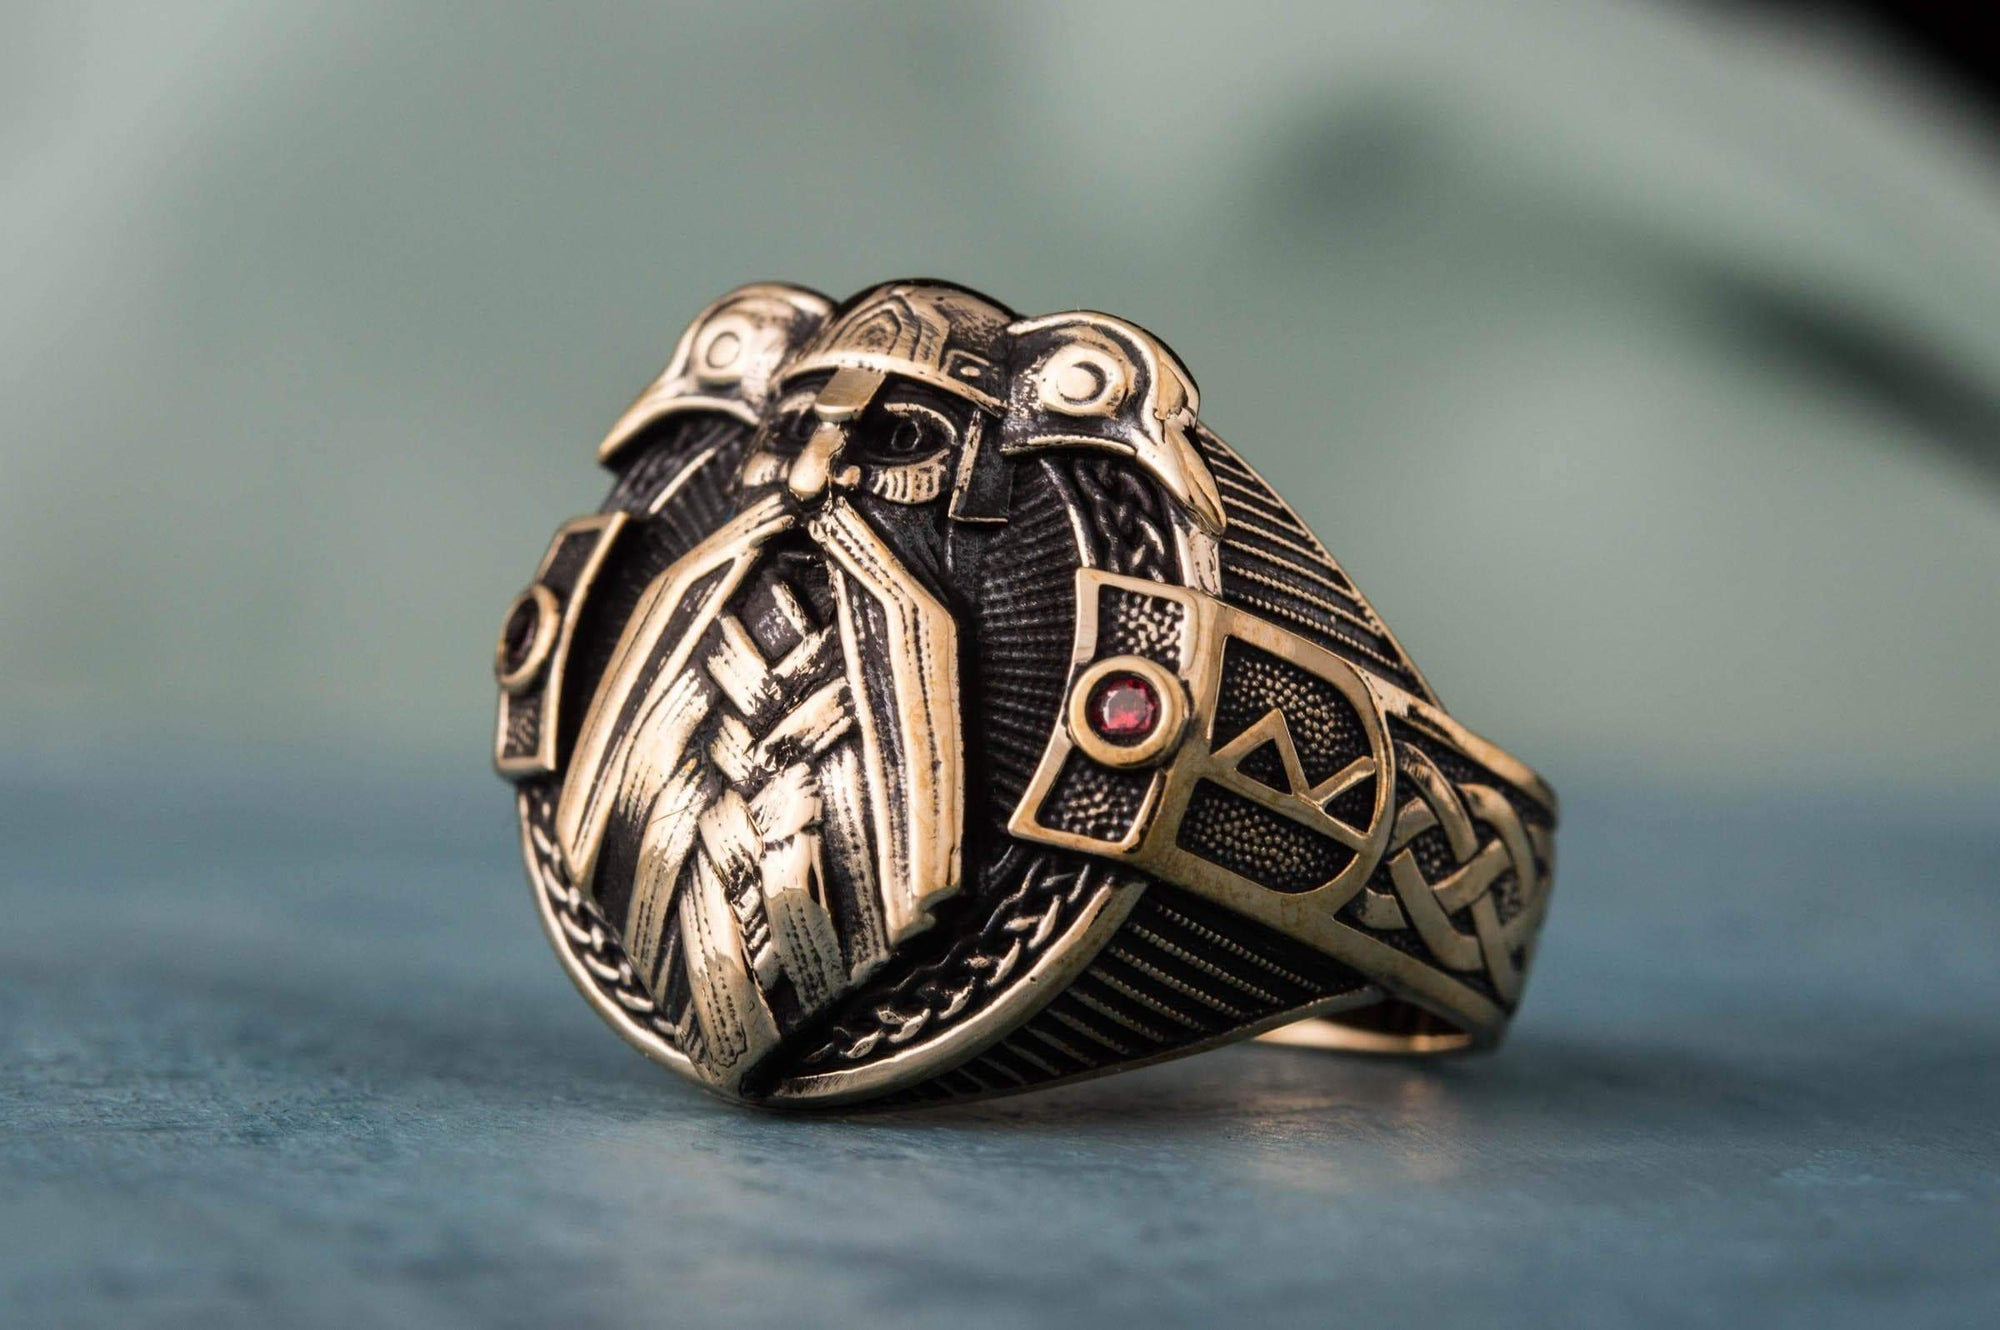 Rings Vikings Odin and his Ravens Handcrafted Ring Ancient Treasures Ancientreasures Viking Odin Thor Mjolnir Celtic Ancient Egypt Norse Norse Mythology